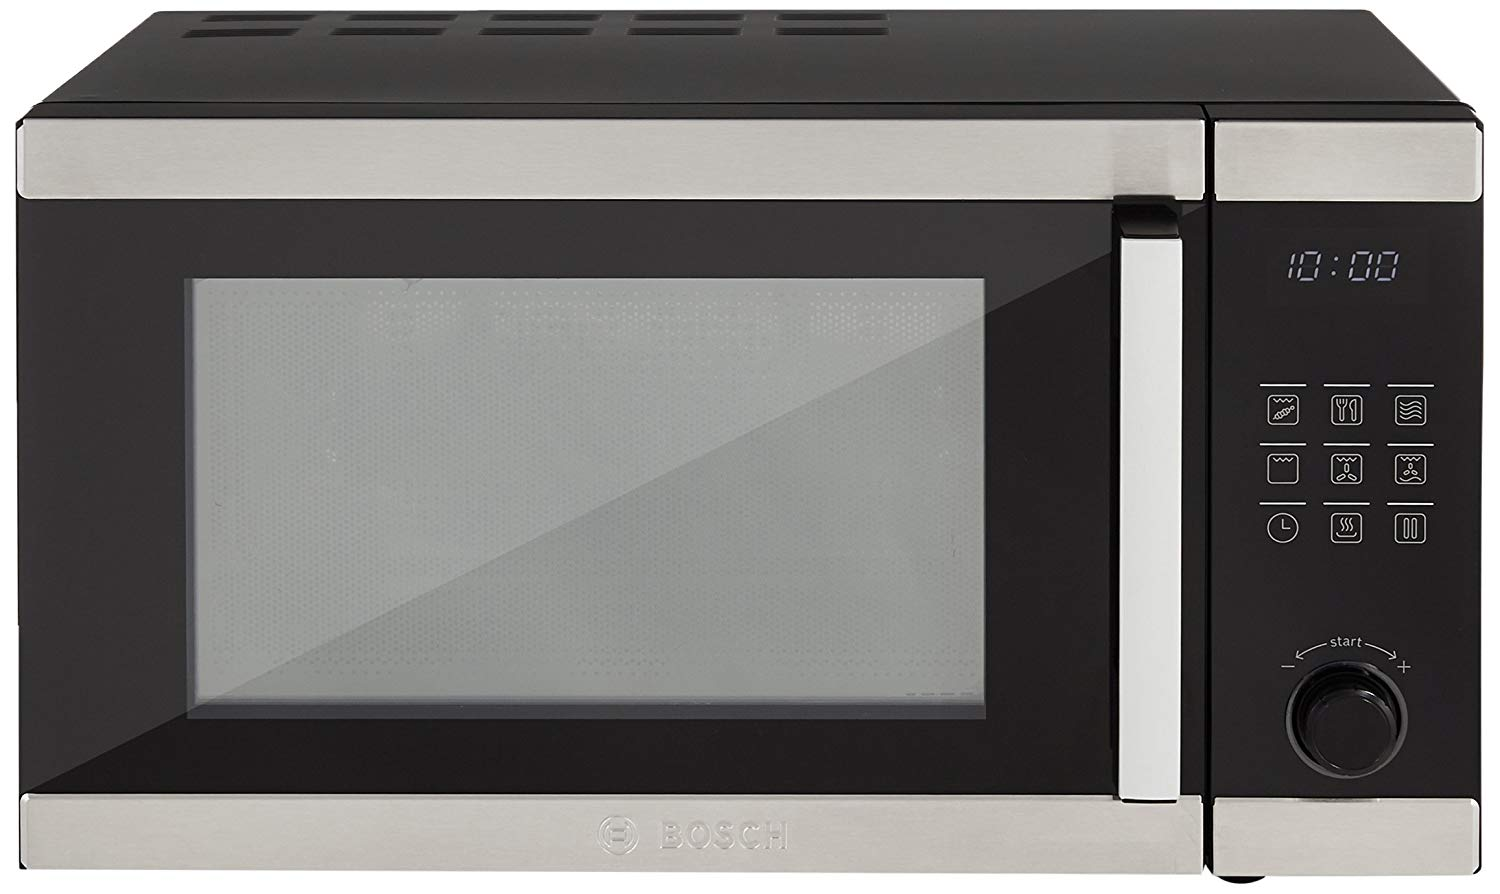 Bosch 23 Liters Convection Microwave Oven (Stainless Steel and Black)